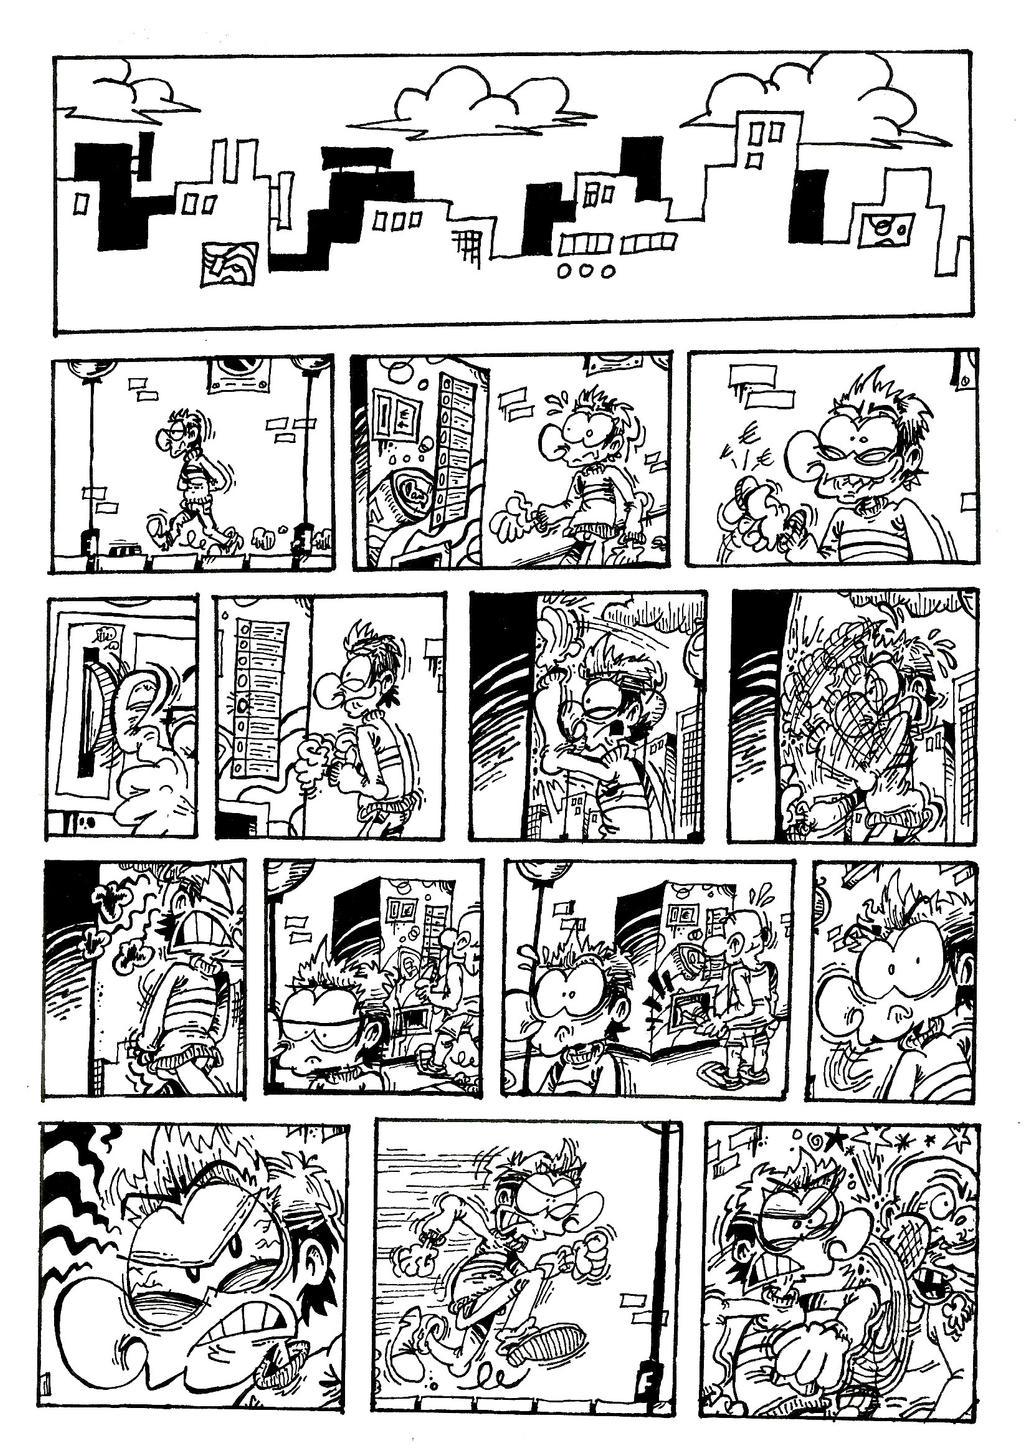 Comic Book Page - European Edition. by ANDREU-T